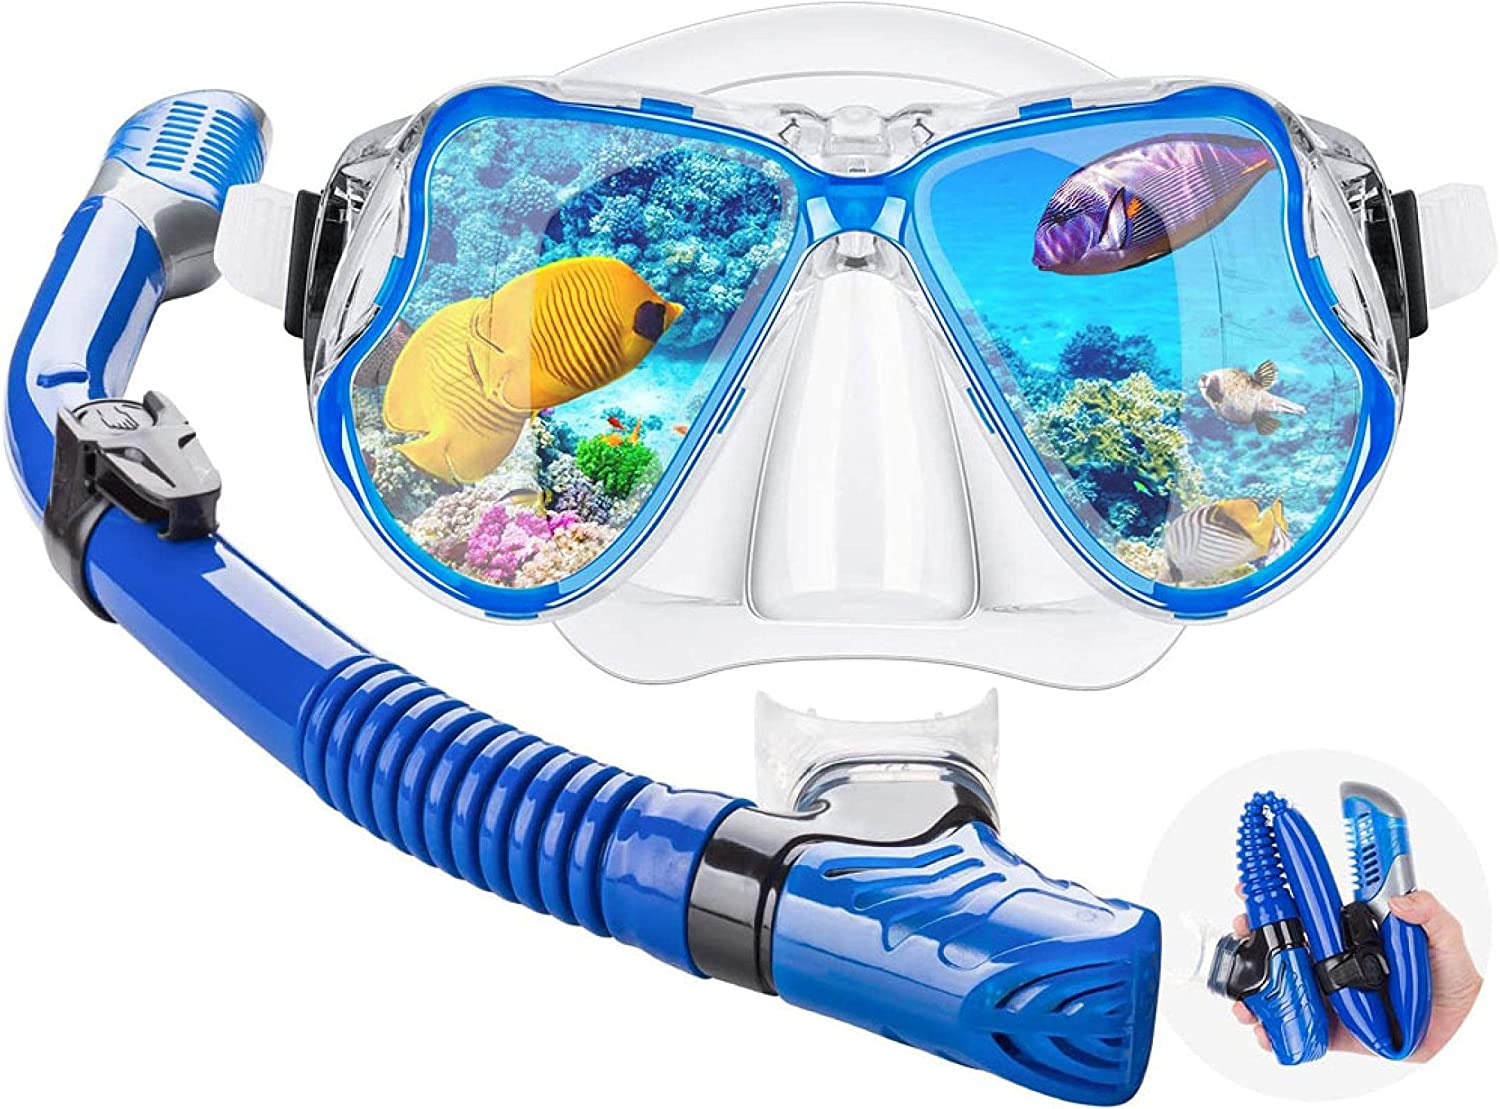 Adult High-End Foldable Full-Dry Tube Max 45% Oakland Mall OFF Diving Silicone Breathing